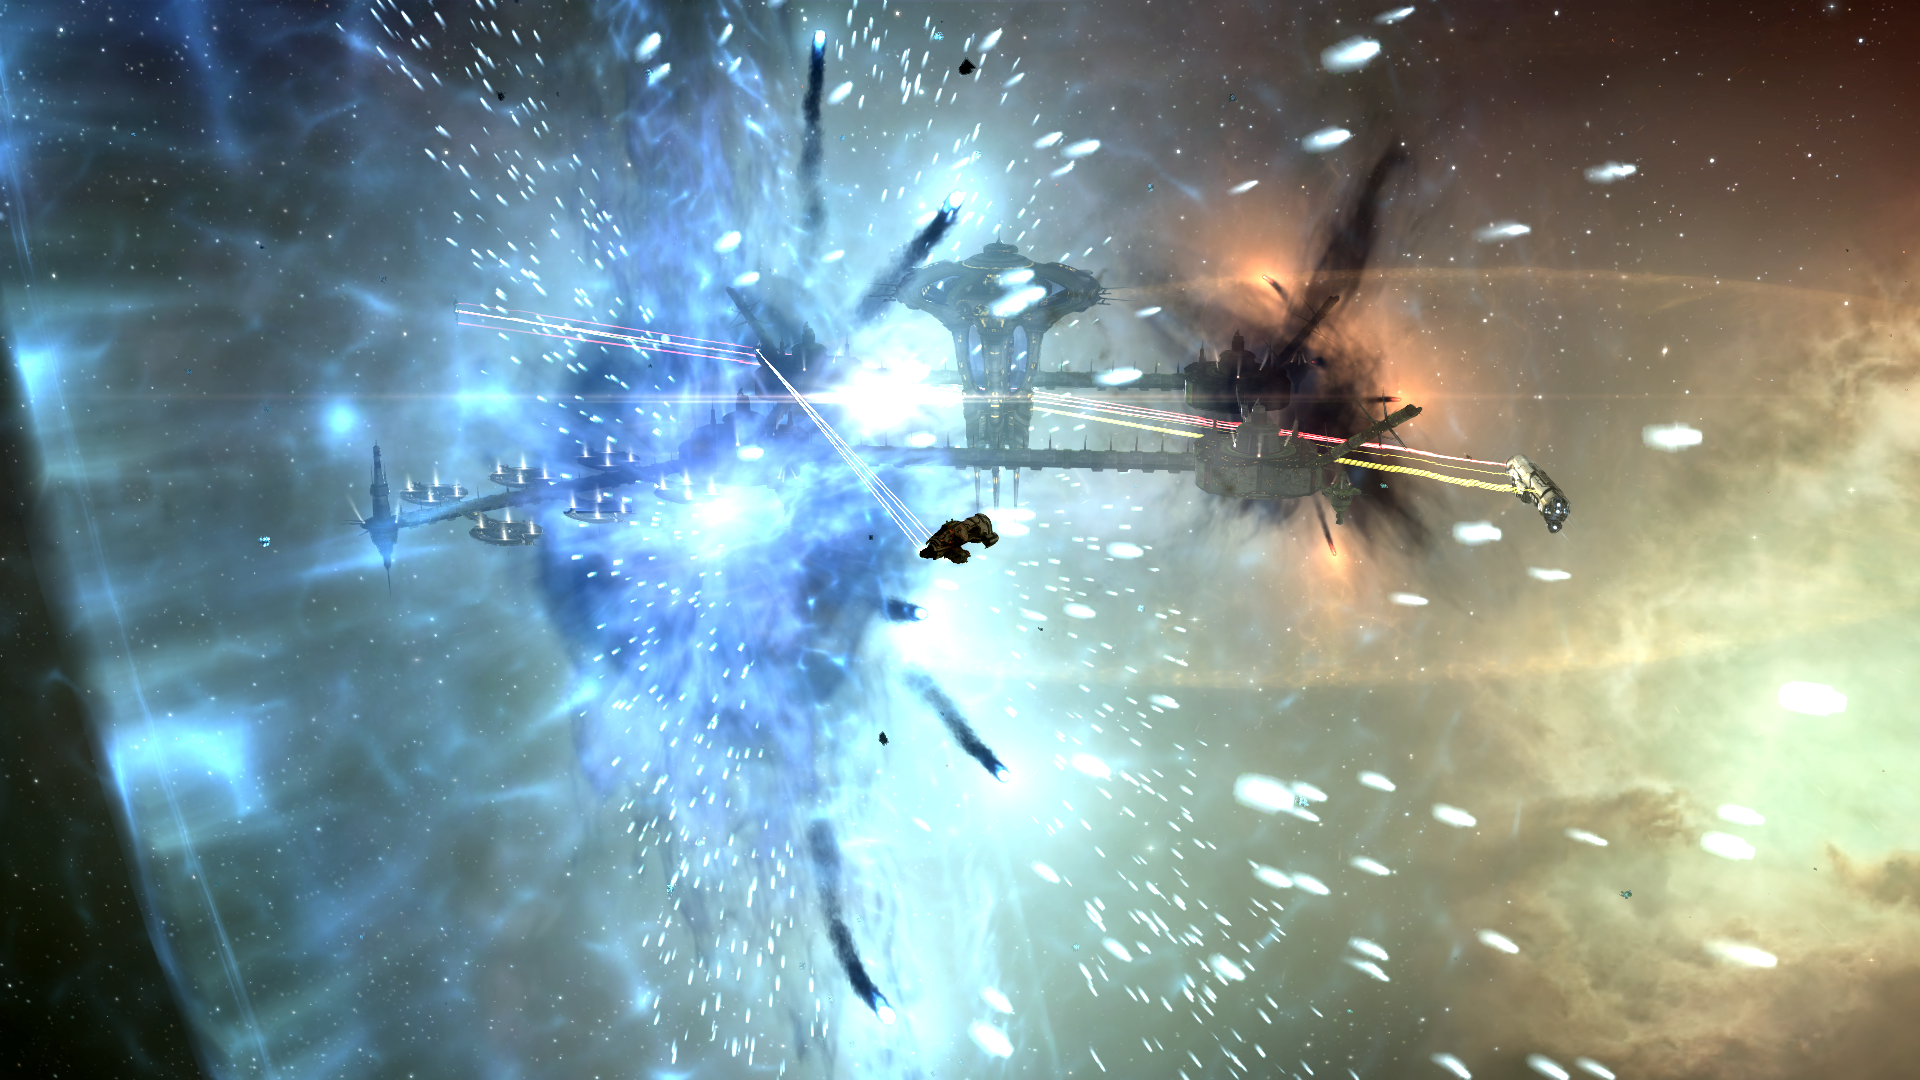 eve_online___purists_vs_sansha_by_vollho